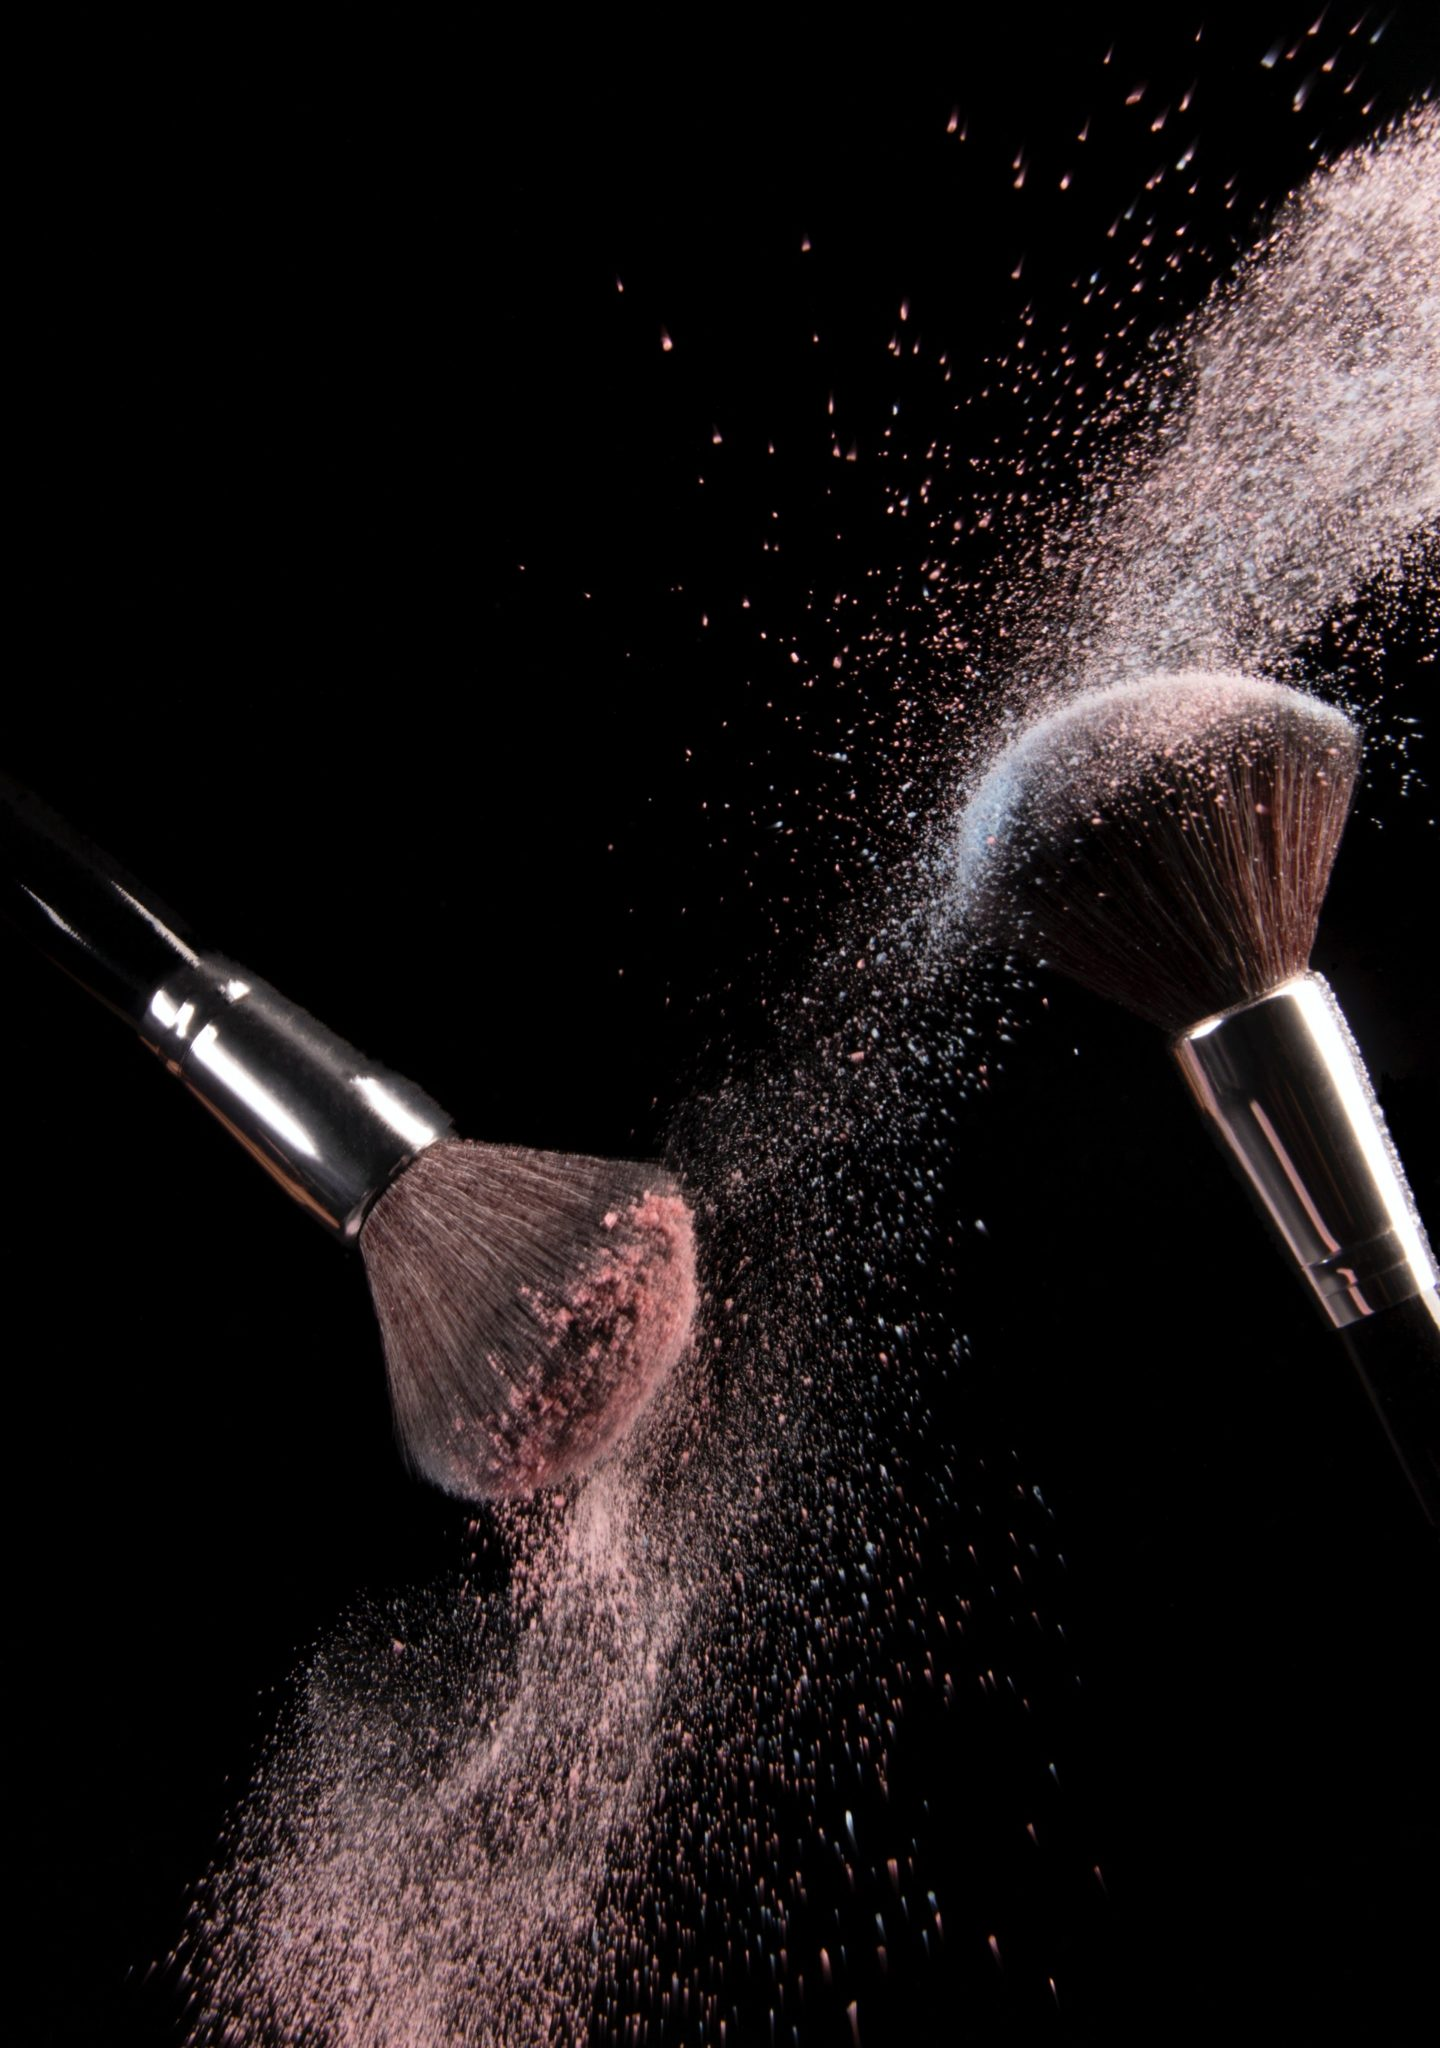 https://www.pexels.com/photo/cosmetics-makeup-brushes-and-powder-dust-explosion-1926620/